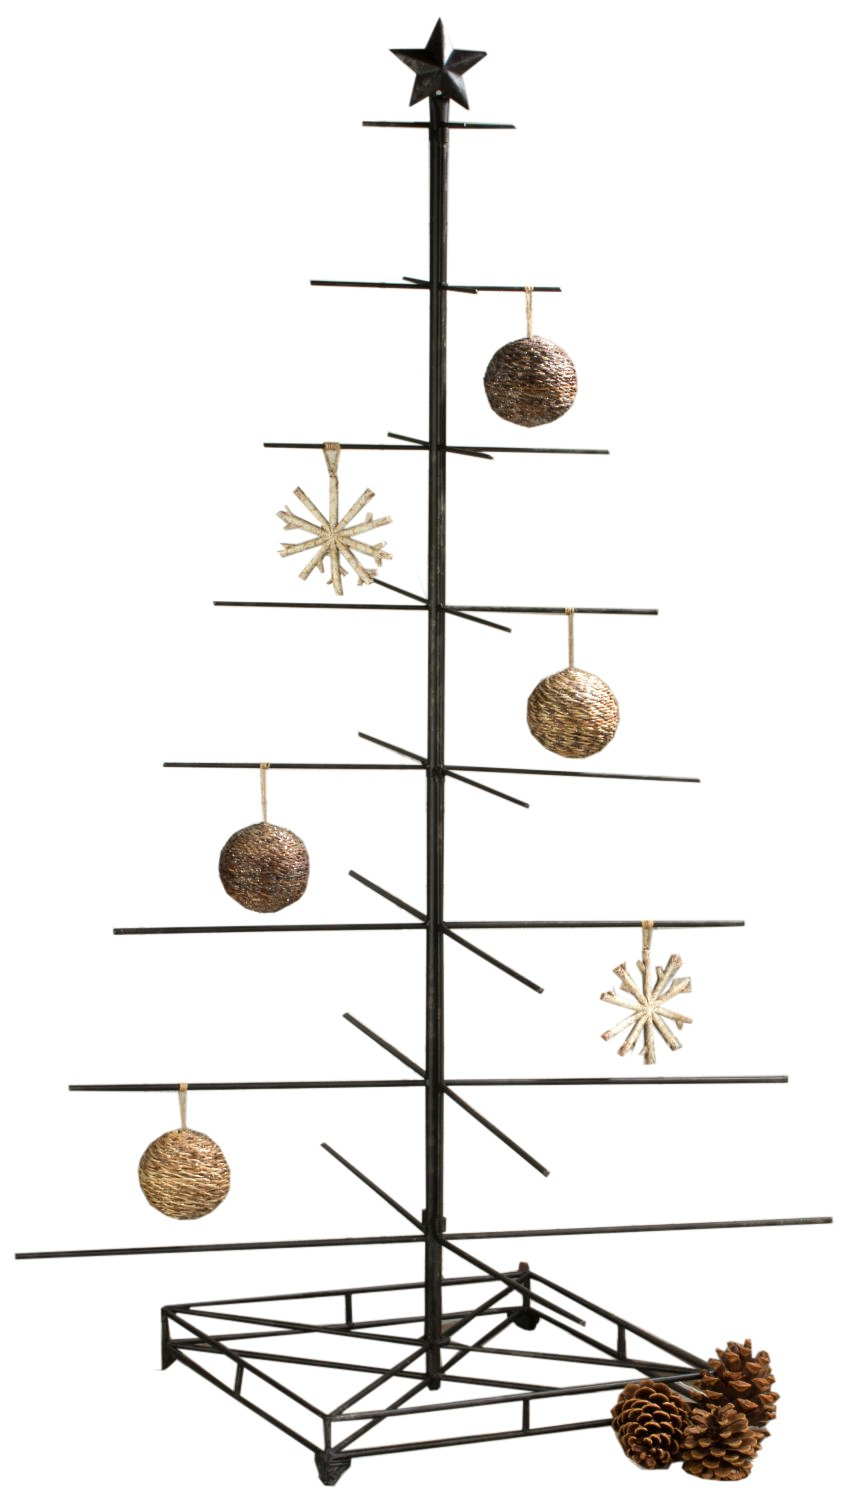 Amazon.com: Tall Ornament Christmas Tree Display - Industrial Style ...